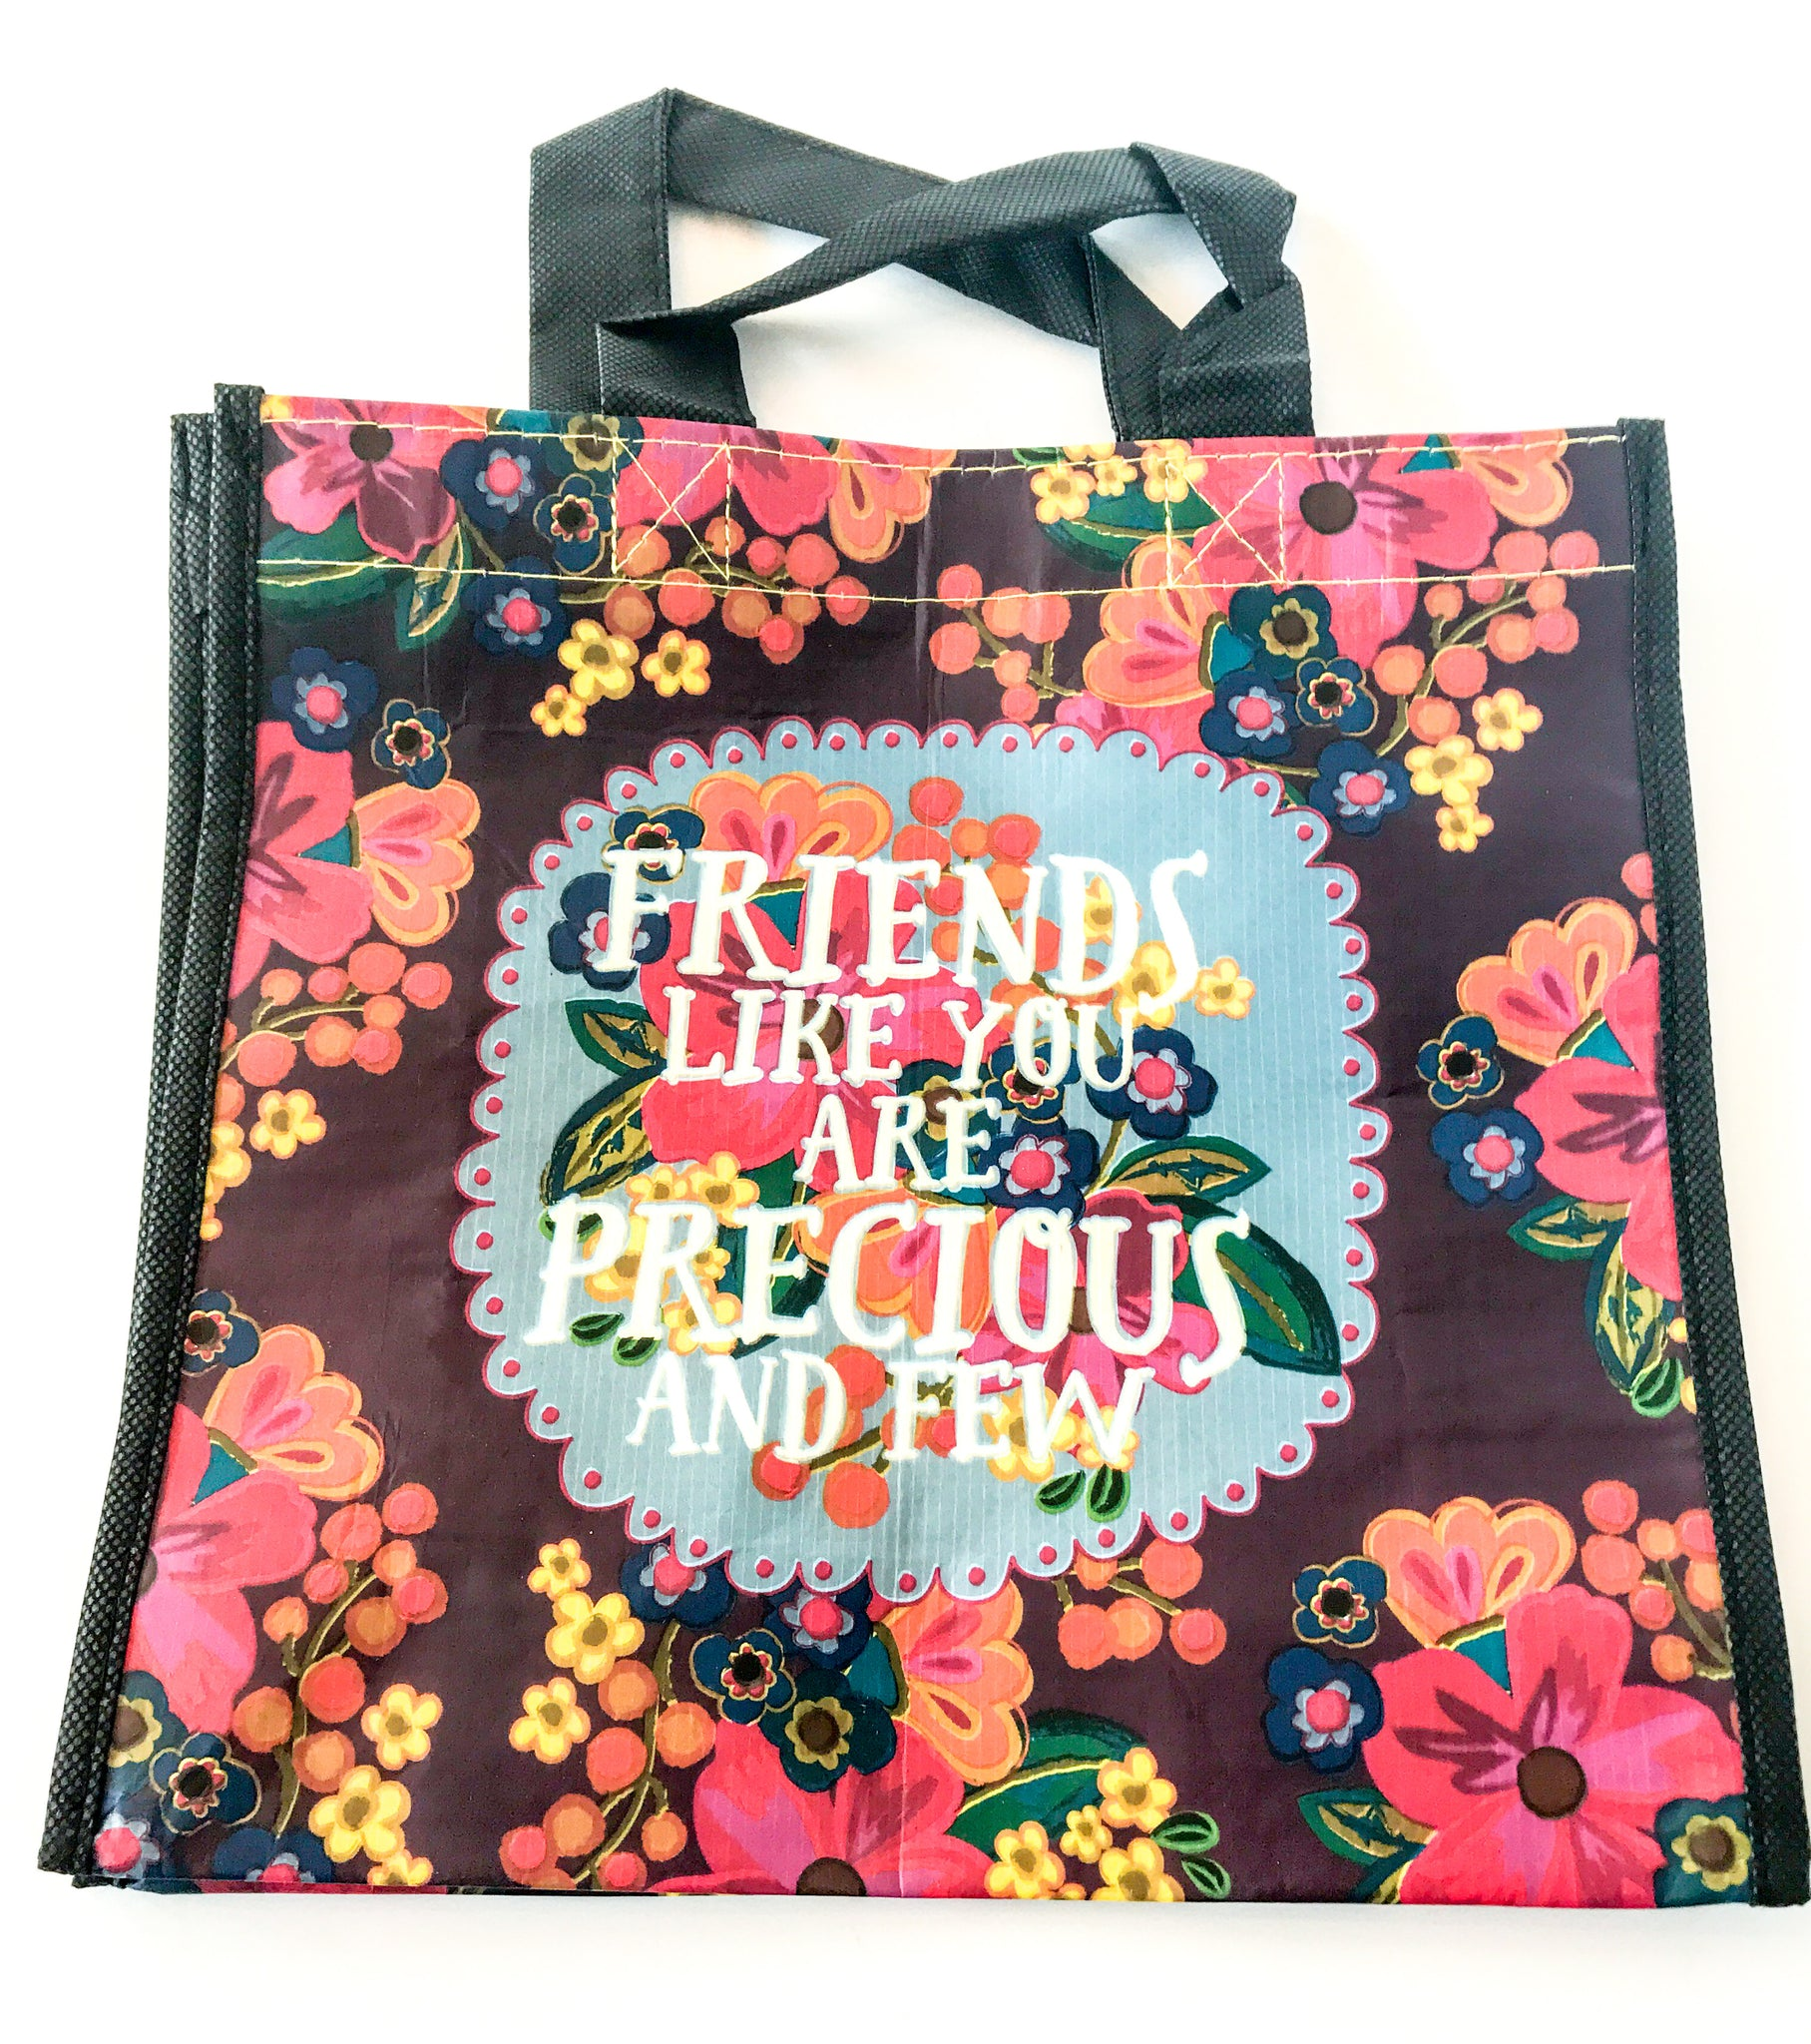 Recycled Plastic Giftbag (Medium) - Friends Like You Are Precious and Few